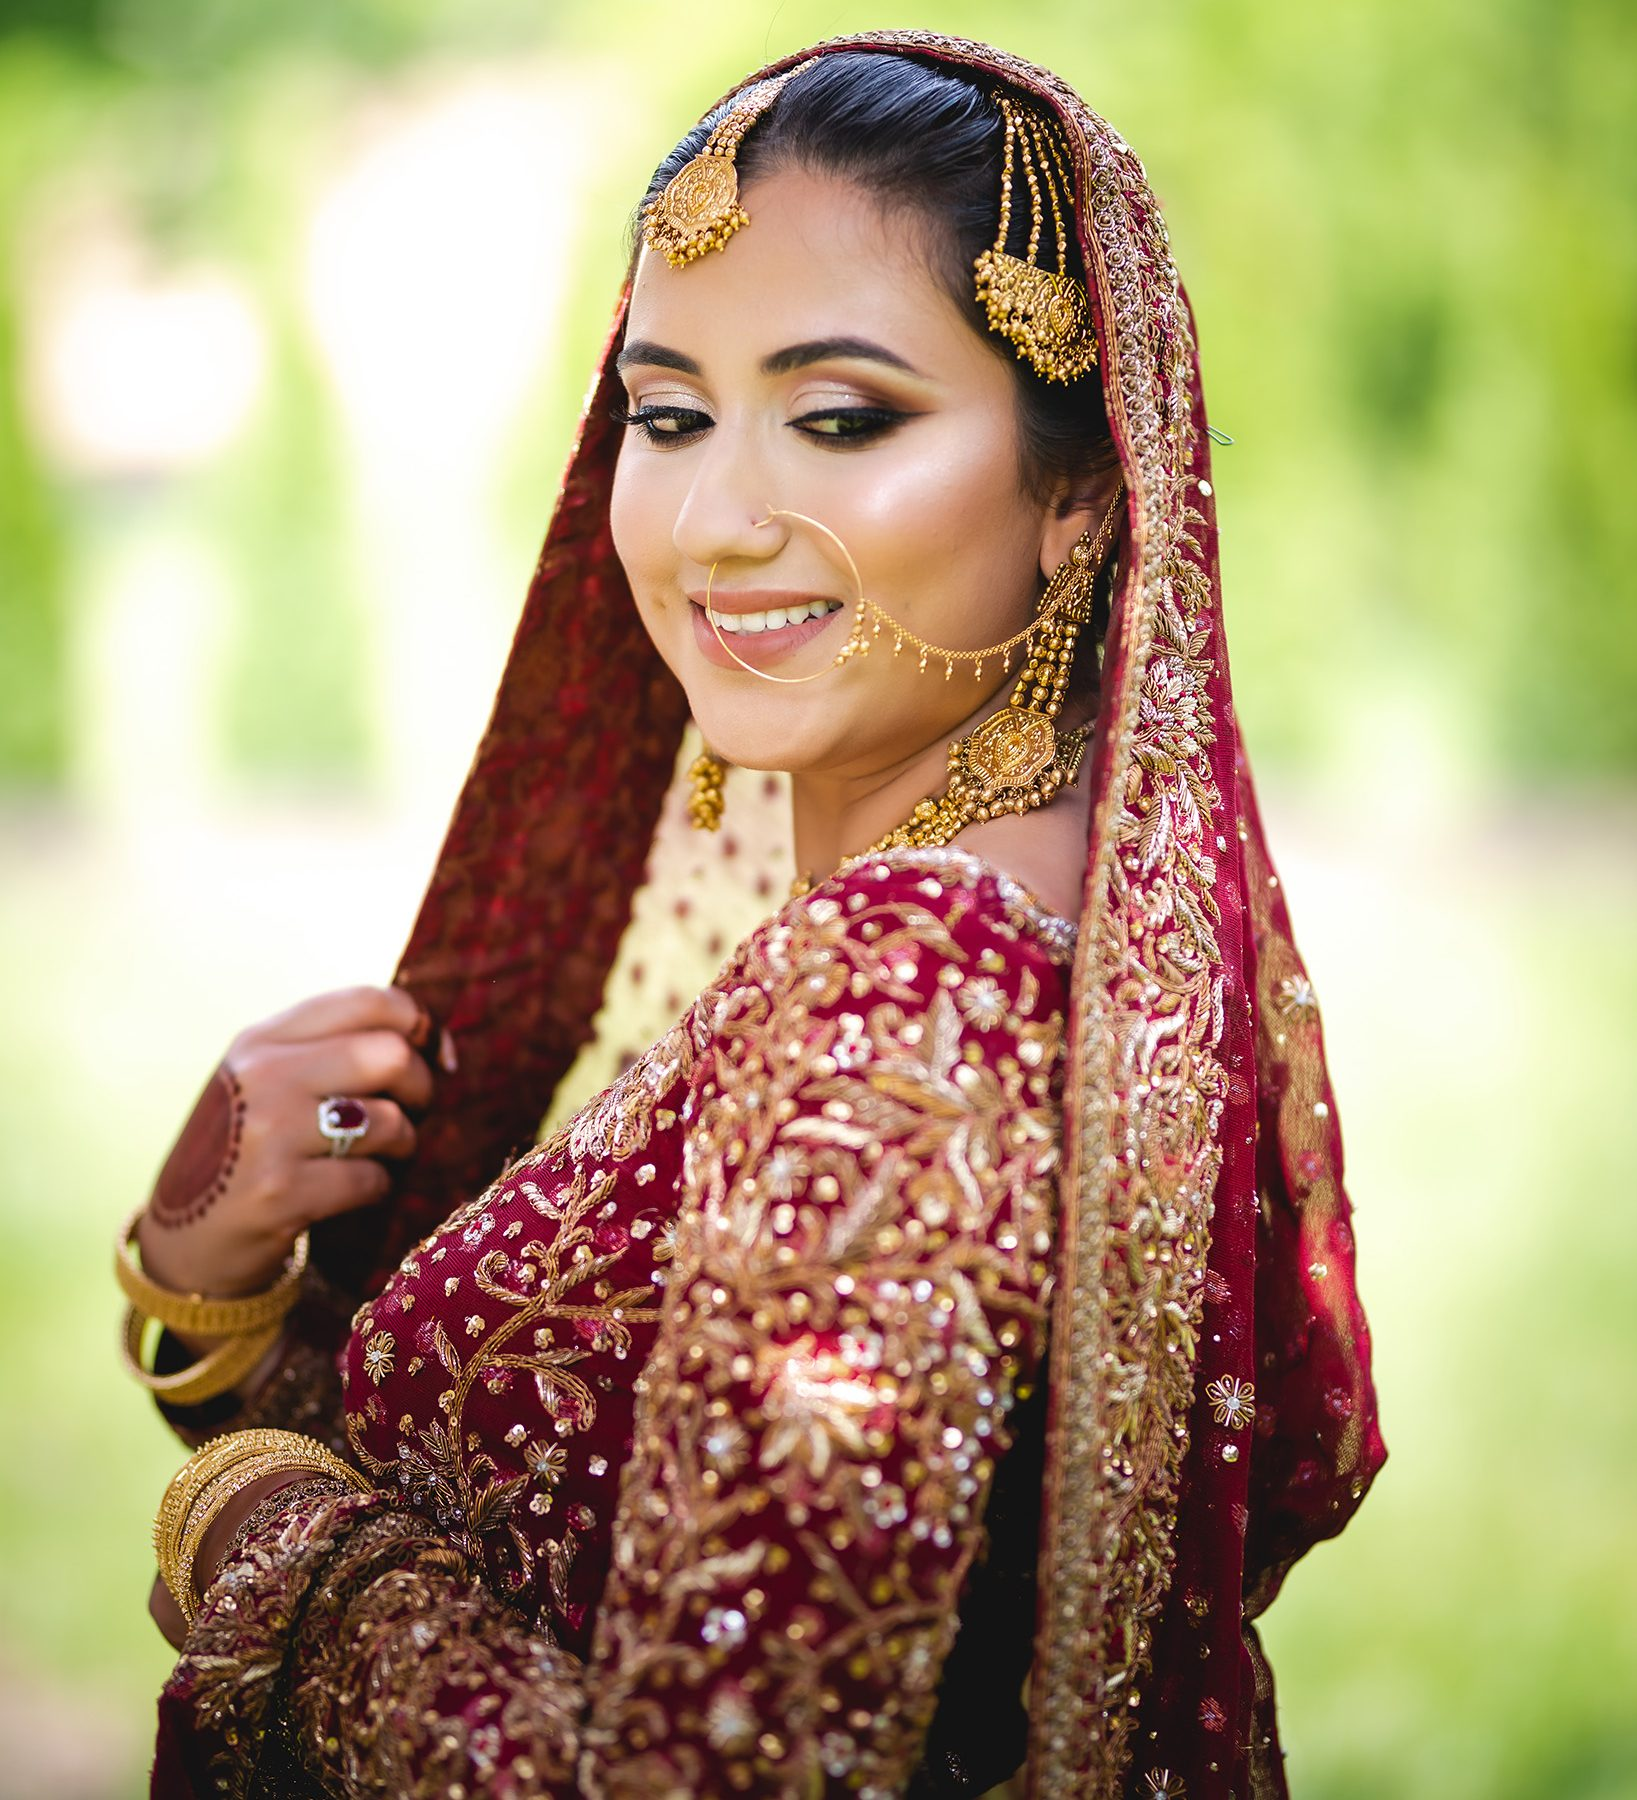 Staten-Island-Wedding-Photography-1637x1800 South Asian Weddings